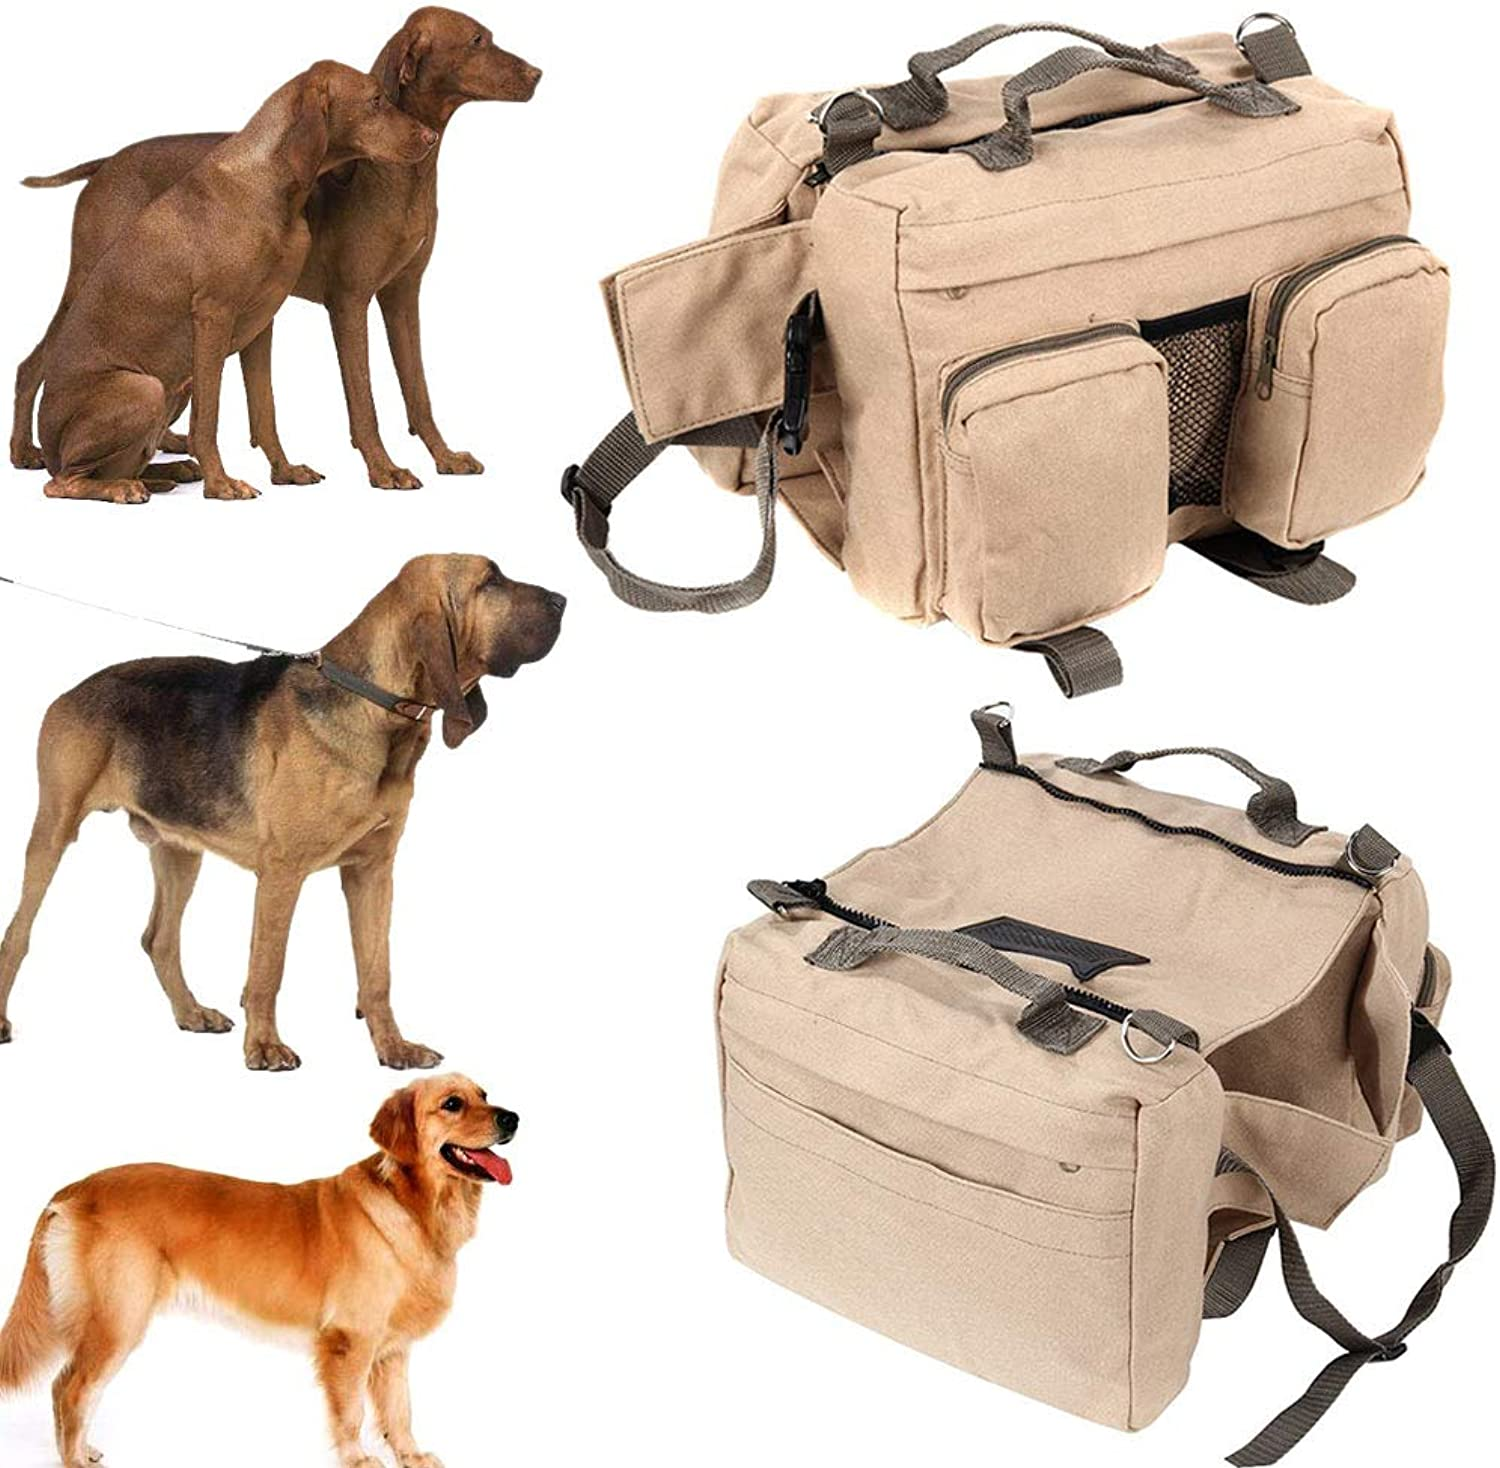 Large Dog Pack Hound Backpack Foviza Travel Rucksack Carrier Dogs Saddle Bag for Hiking